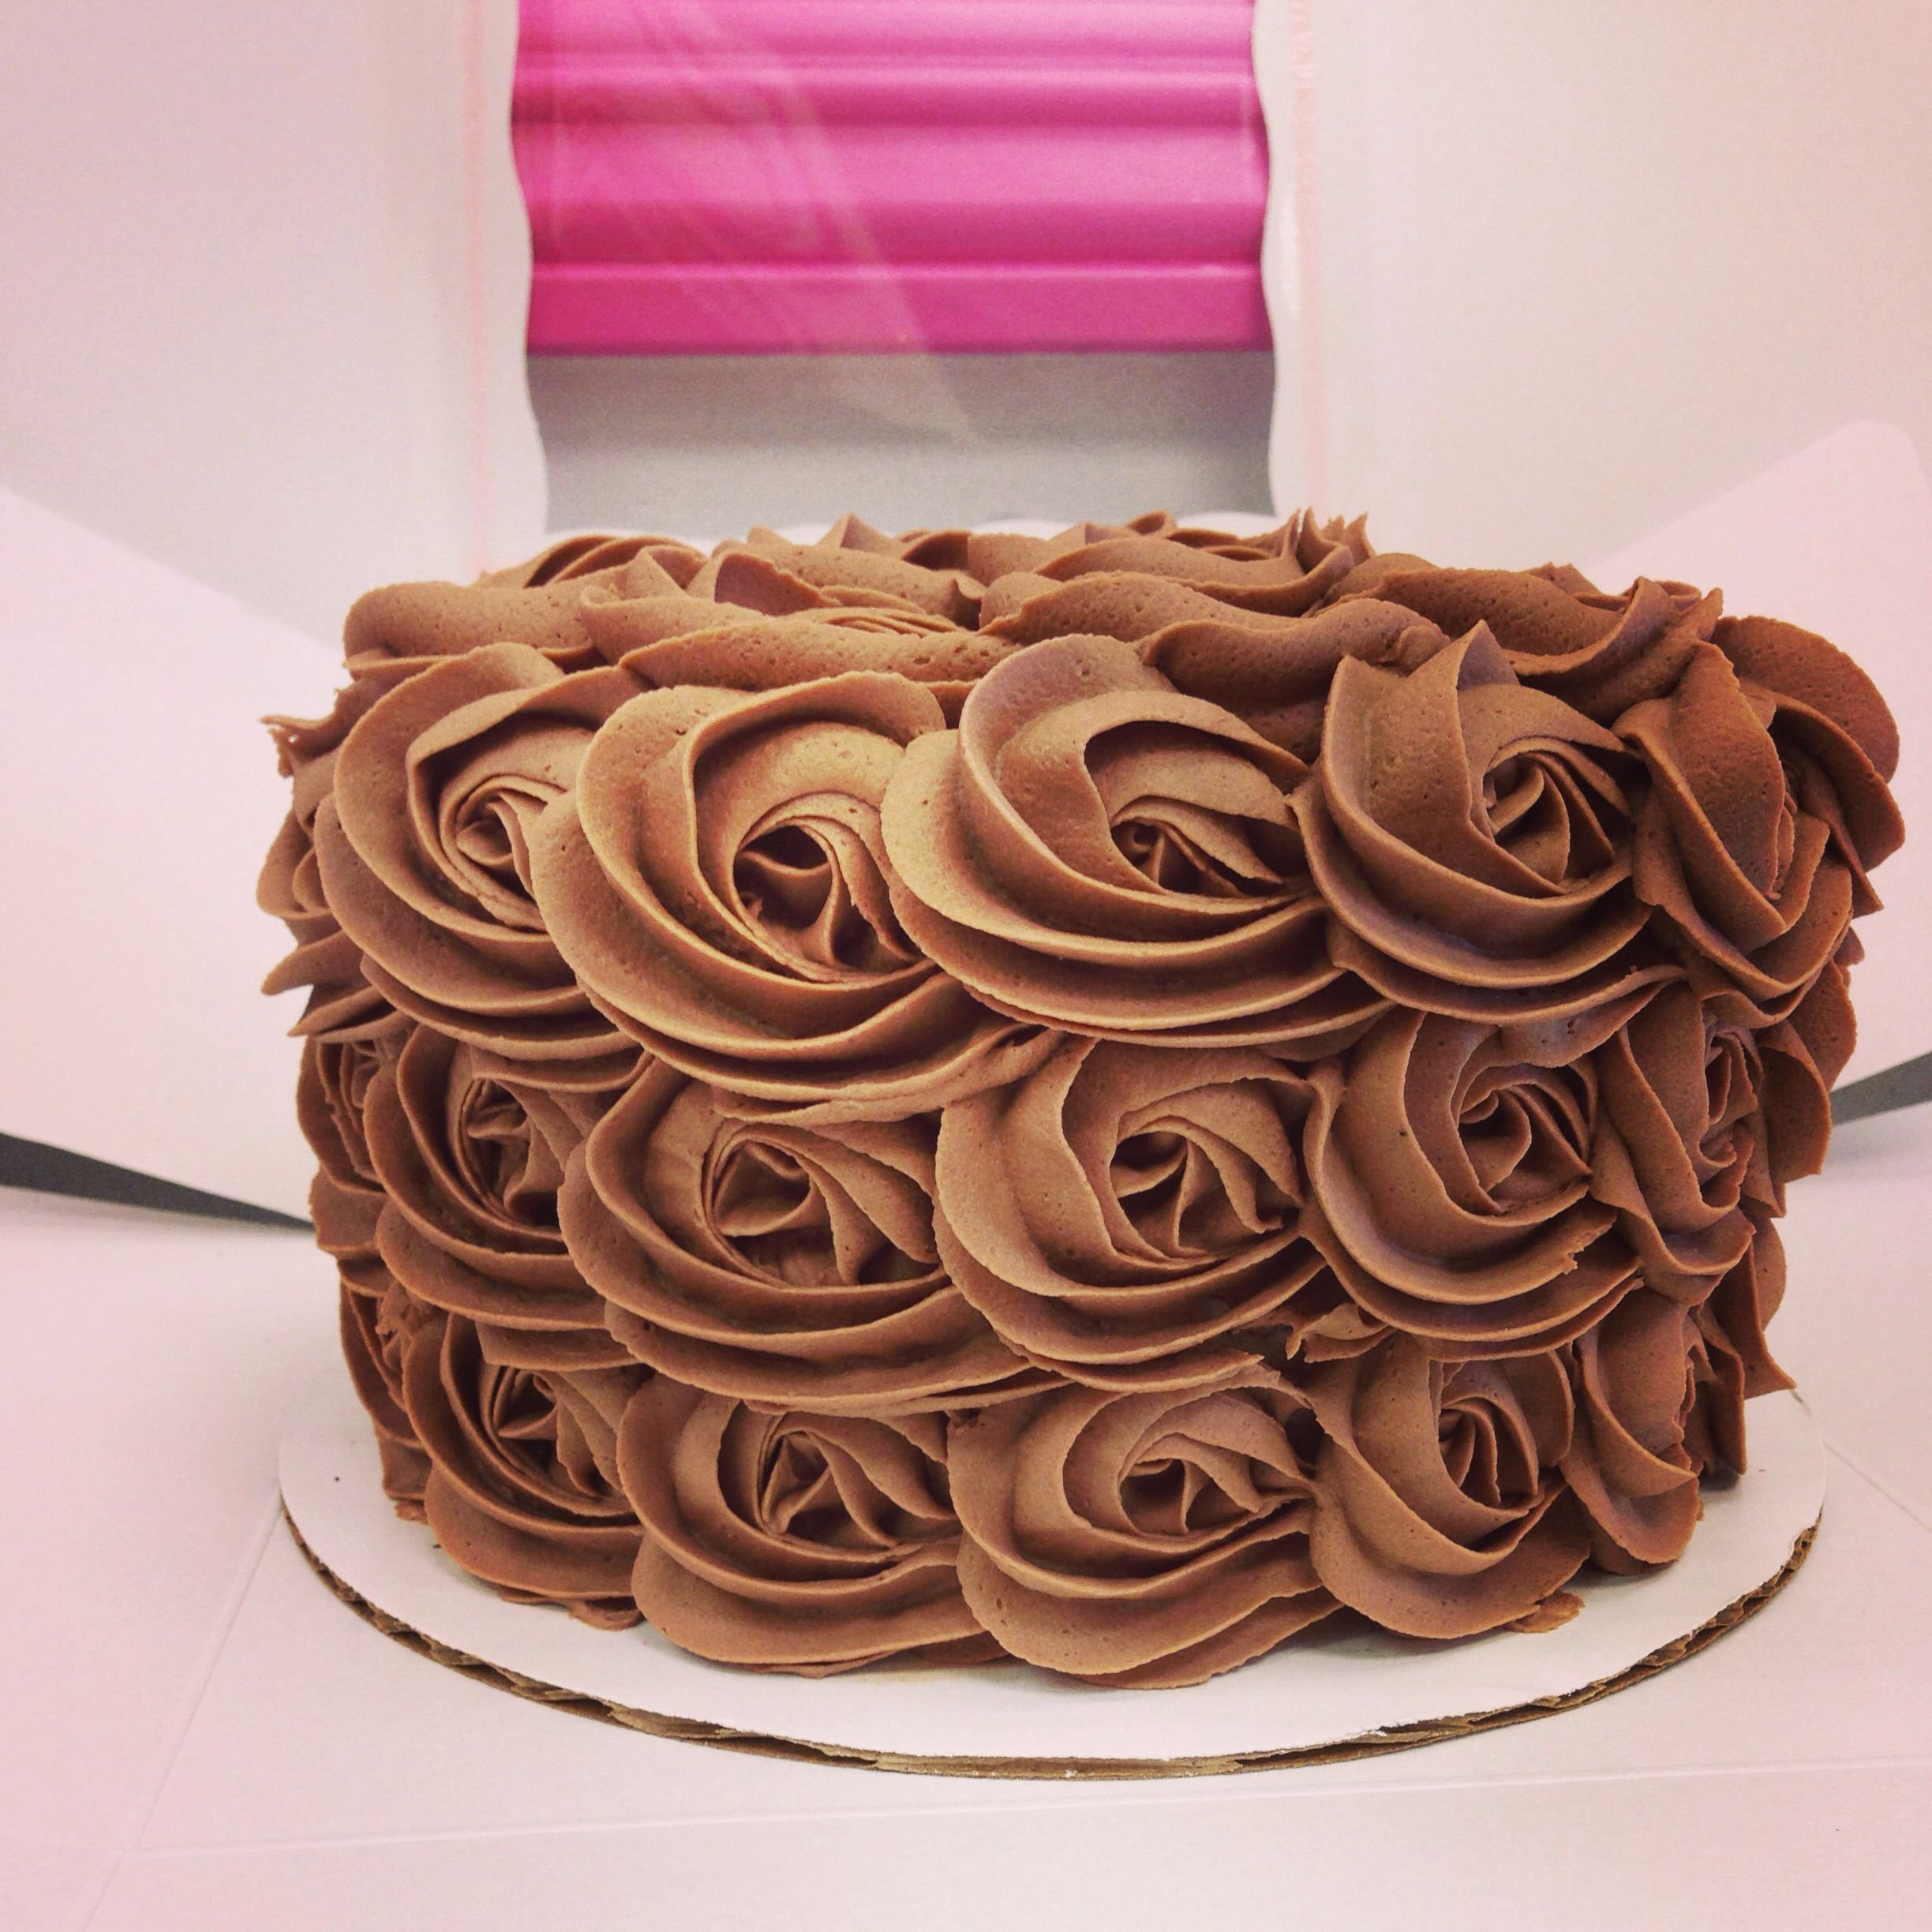 Teddy Rosette Cake - Chocolate cake layers filled with homemade ...